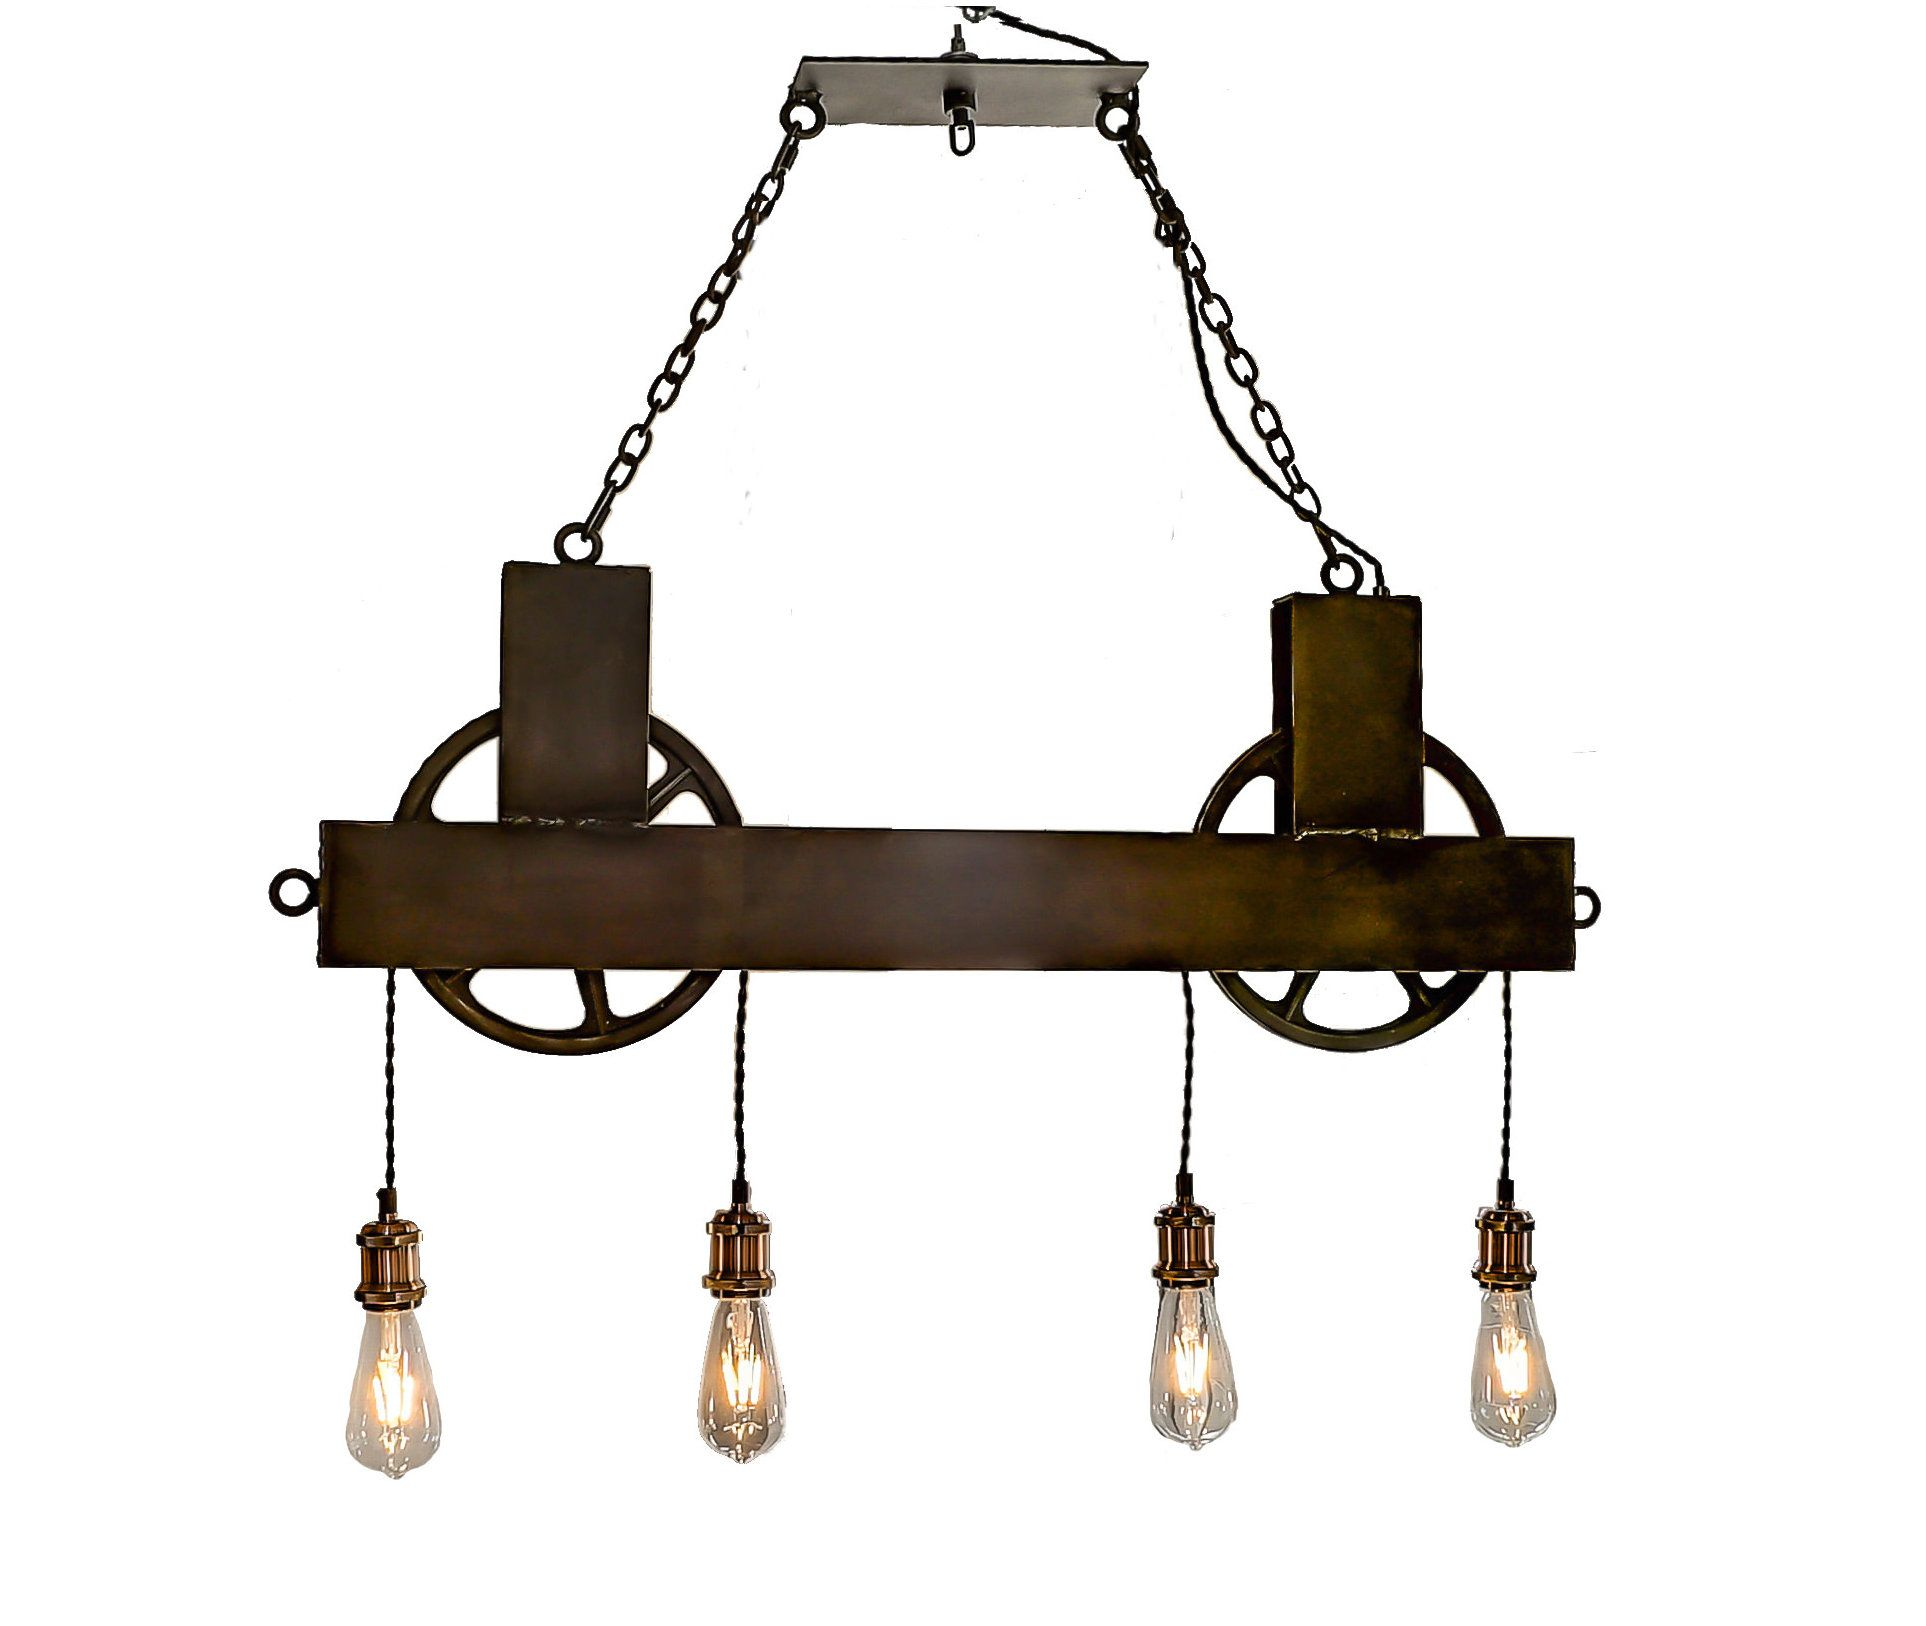 4 Light Dual Pulley Chandelier Black Steel Wheels Free Shipping Rustic Chandelier Lighting Steel Chandelier Dining Chandelier Rustic Chandelier Rustic Chandelier Lighting Dining Chandelier